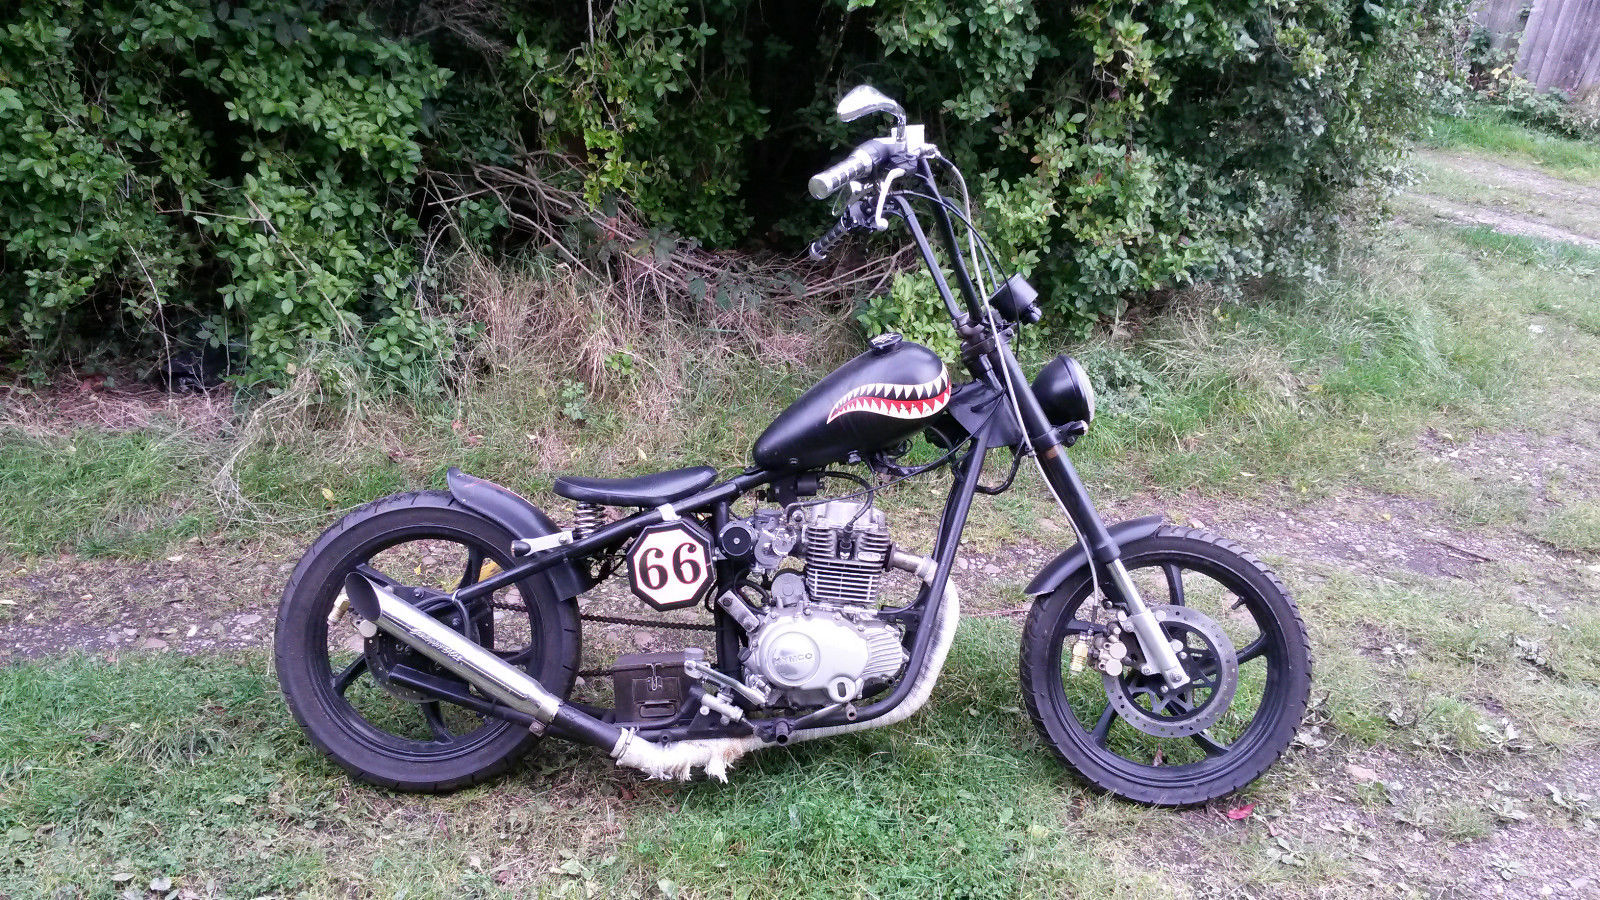 Bobber 125cc Harley Davidson Custom Cruiser Chopper Kawasaki Engine Diagram Lookalike